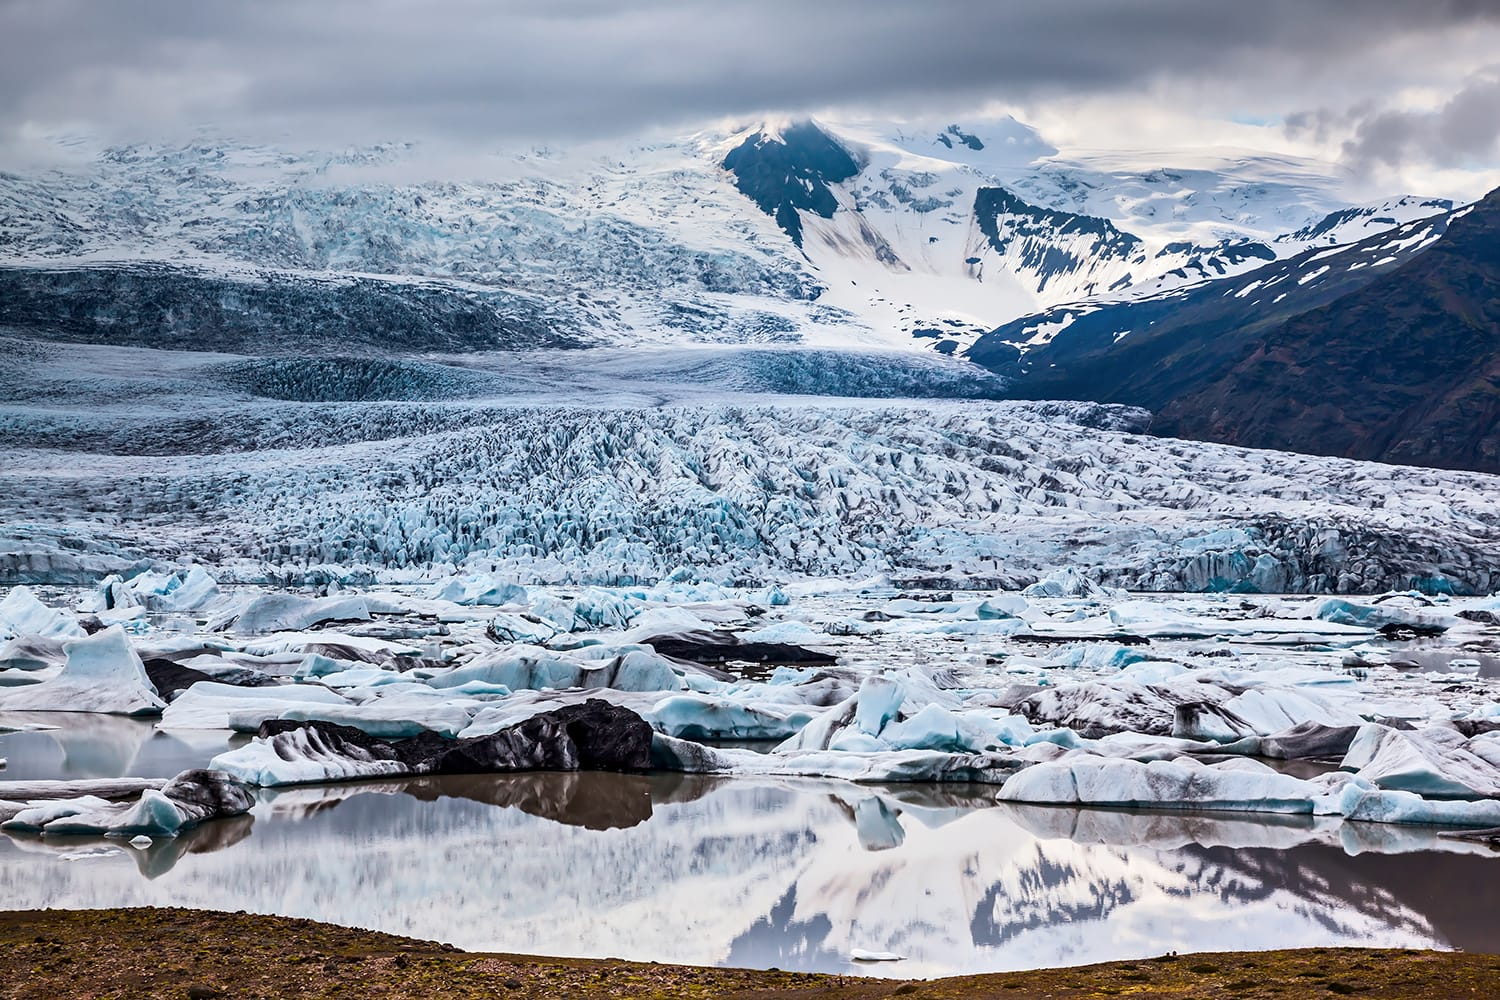 Vatnajokull, Iceland's largest glacier on the island. Glacier provides water Ice Lagoon Jokulsarlon.